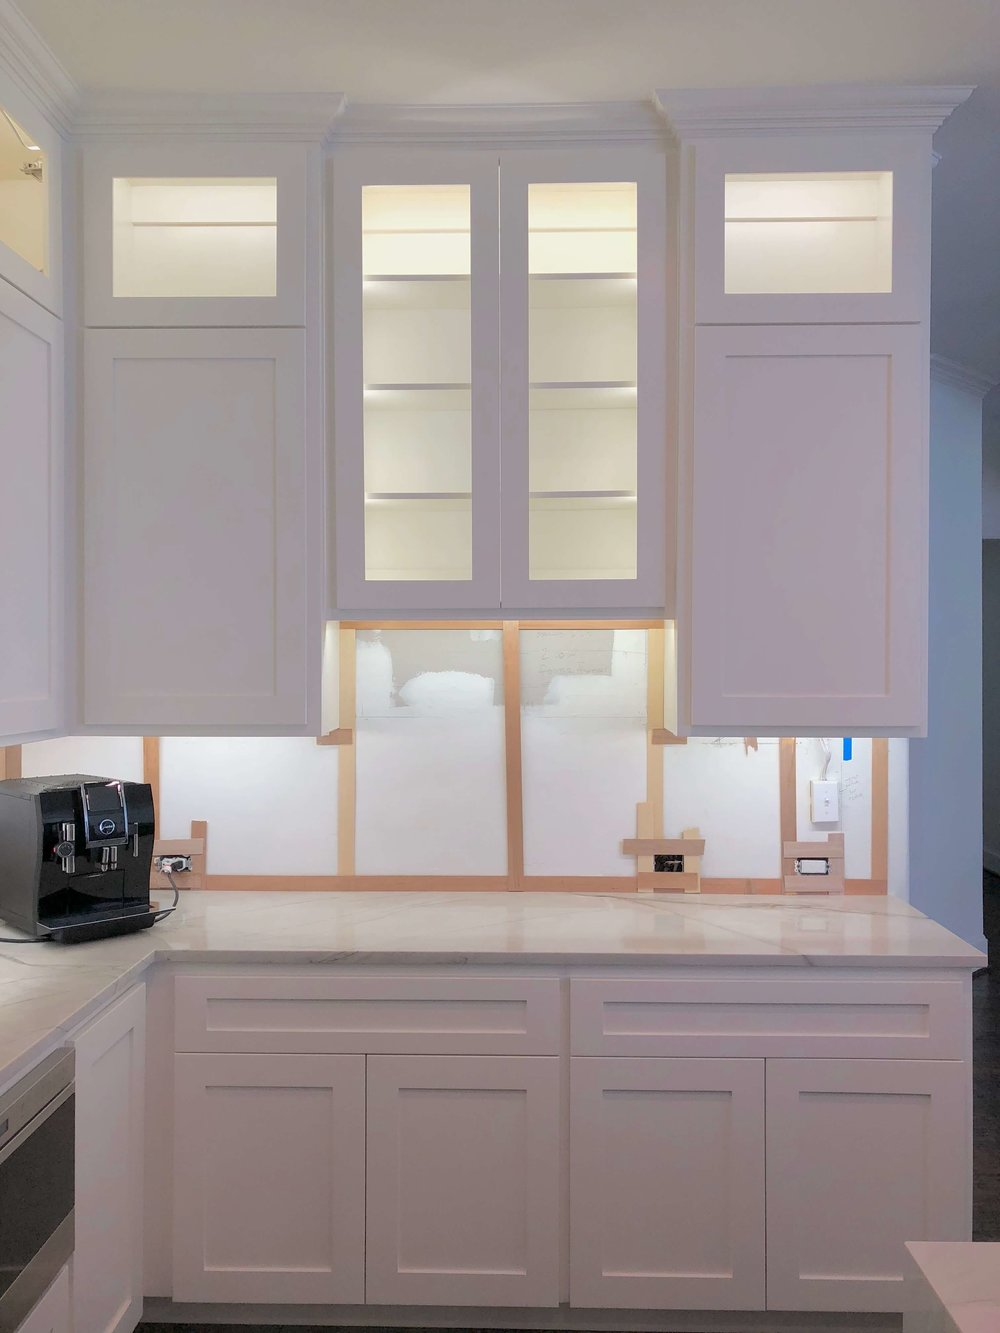 LED kitchen cabinet lighting in kitchen remodel